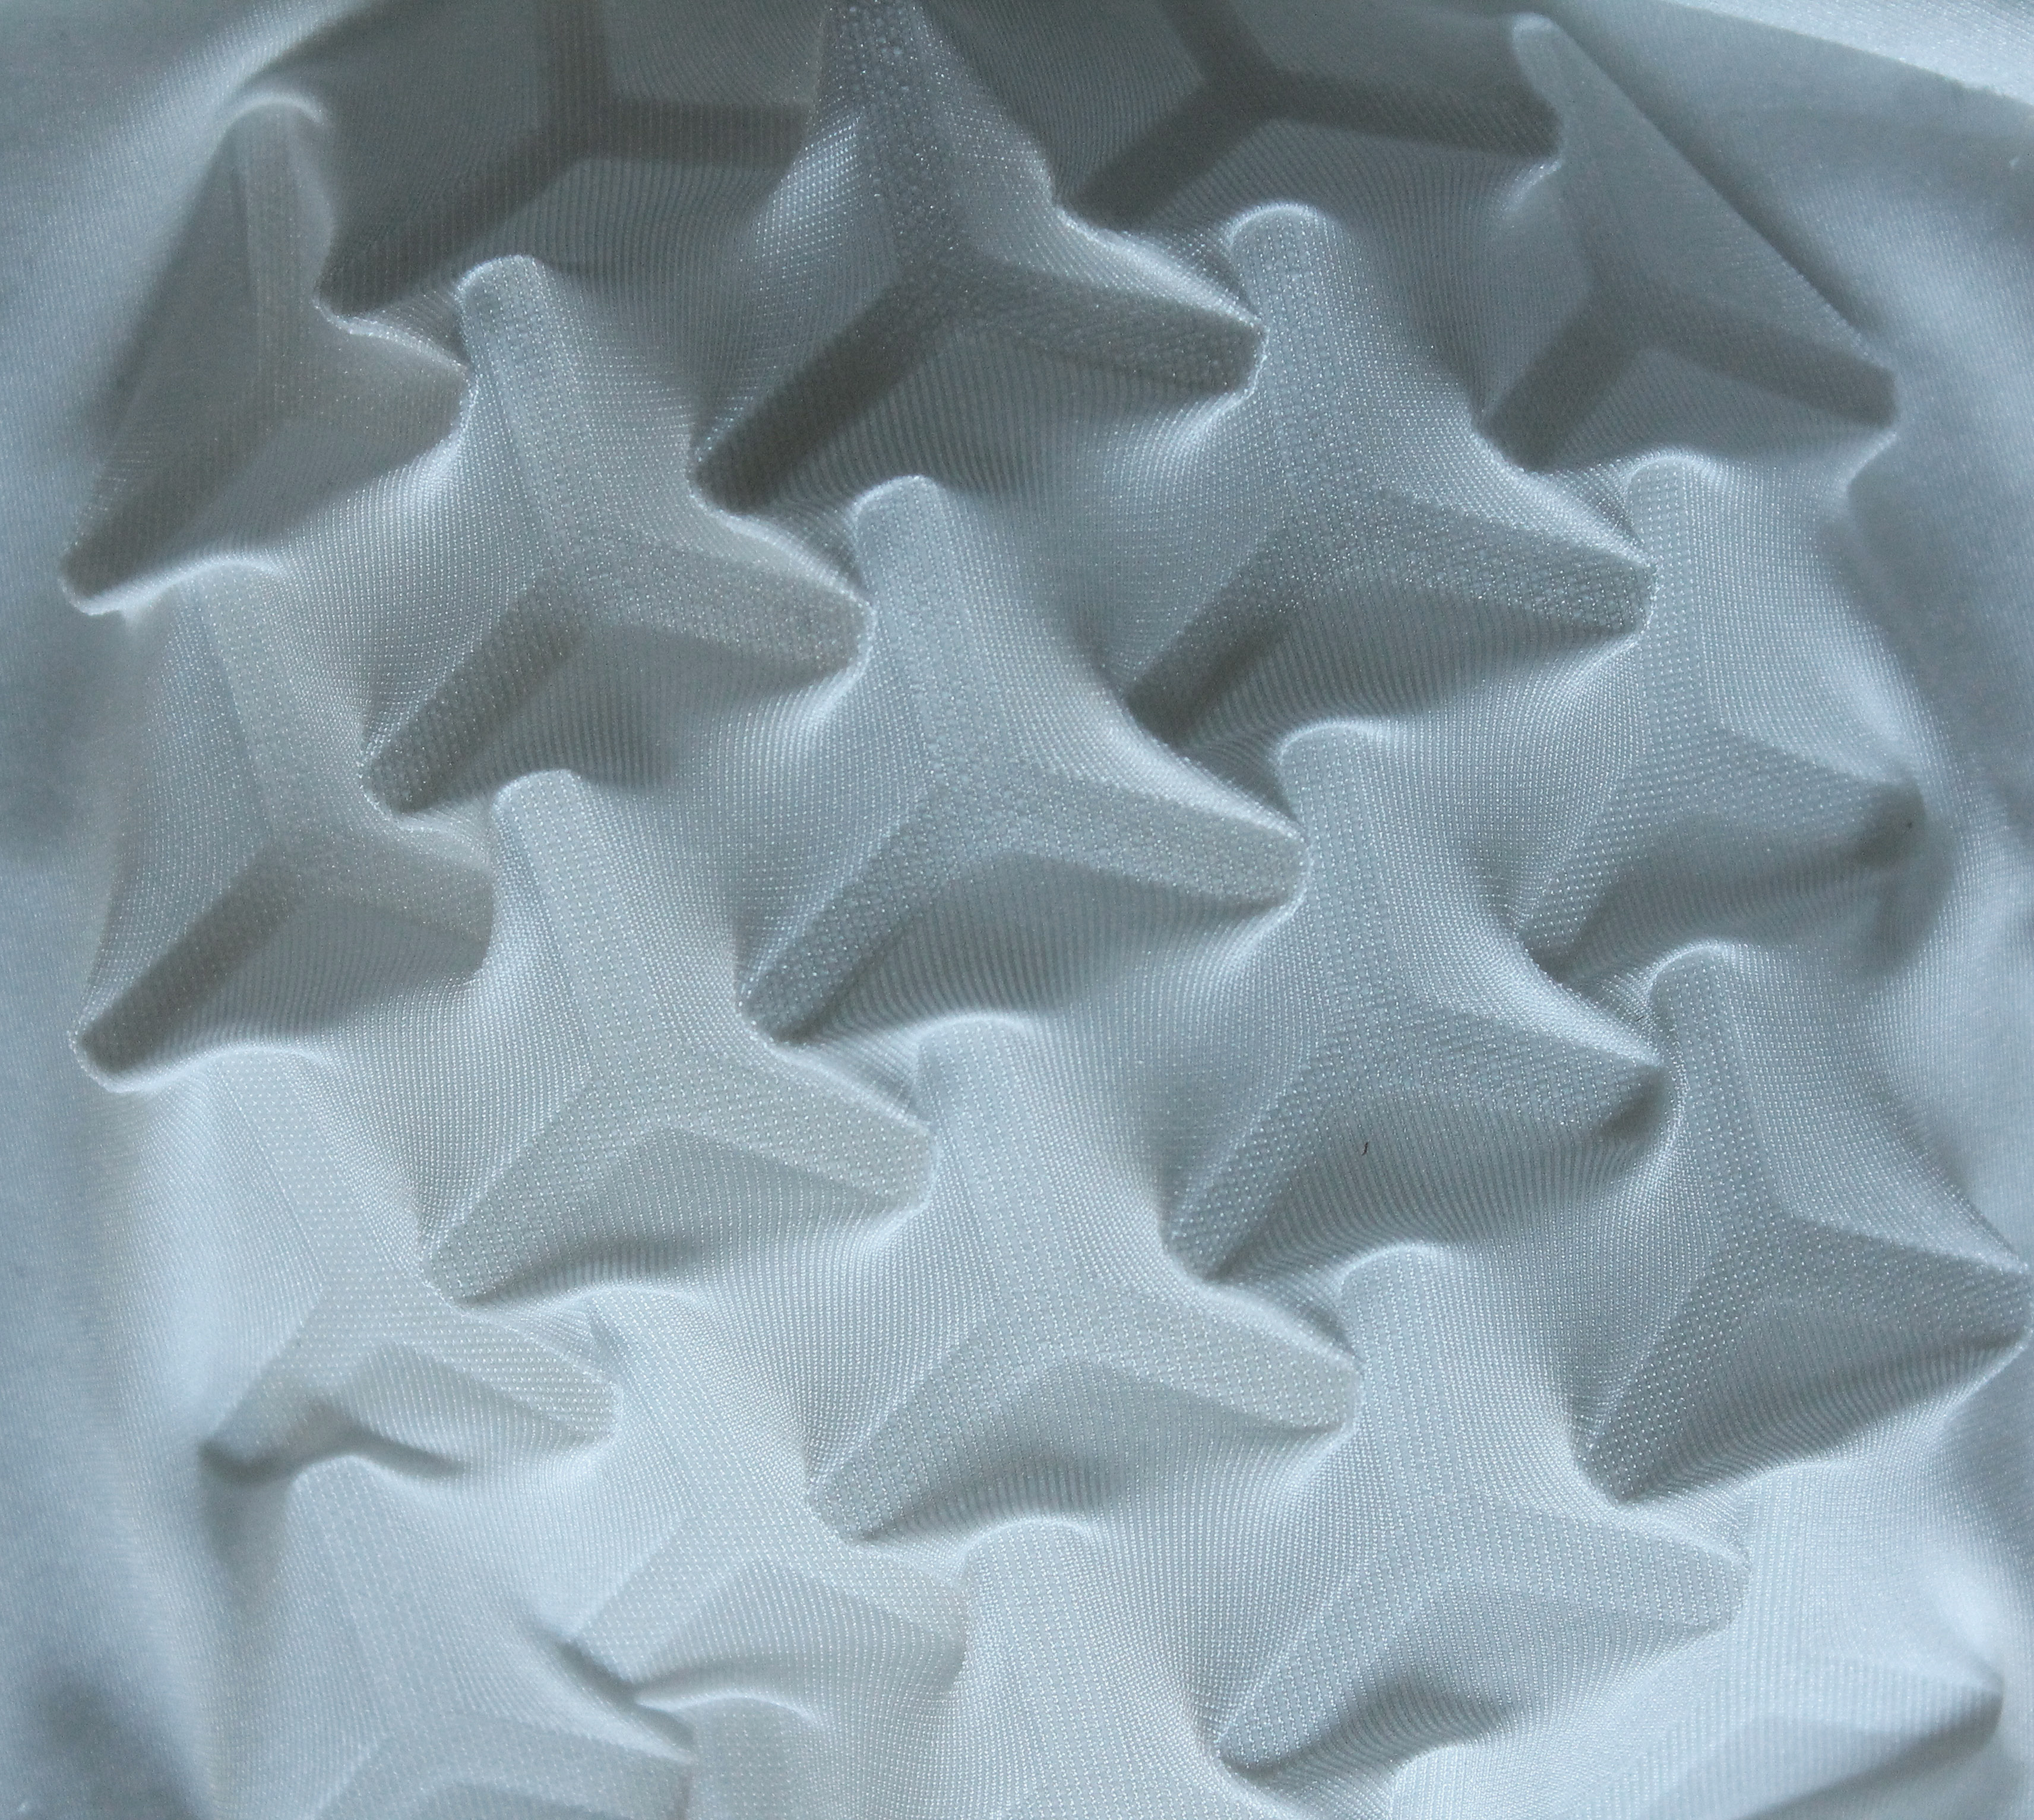 Self-Shaping-Textiles-09